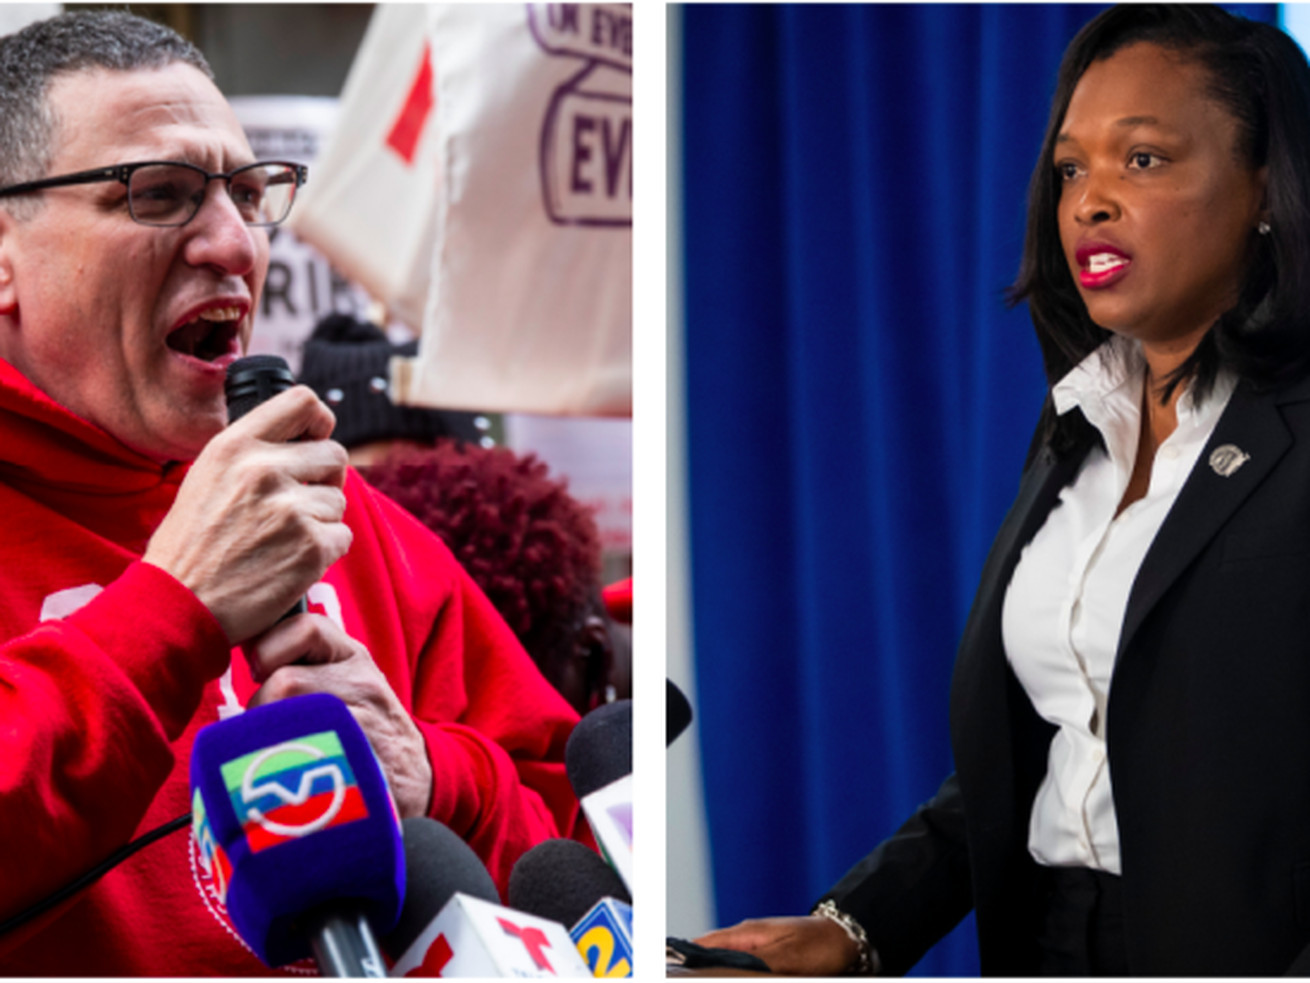 Chicago Teachers Union President Jesse Sharkey and Chicago Public Schools CEO Janice Jackson